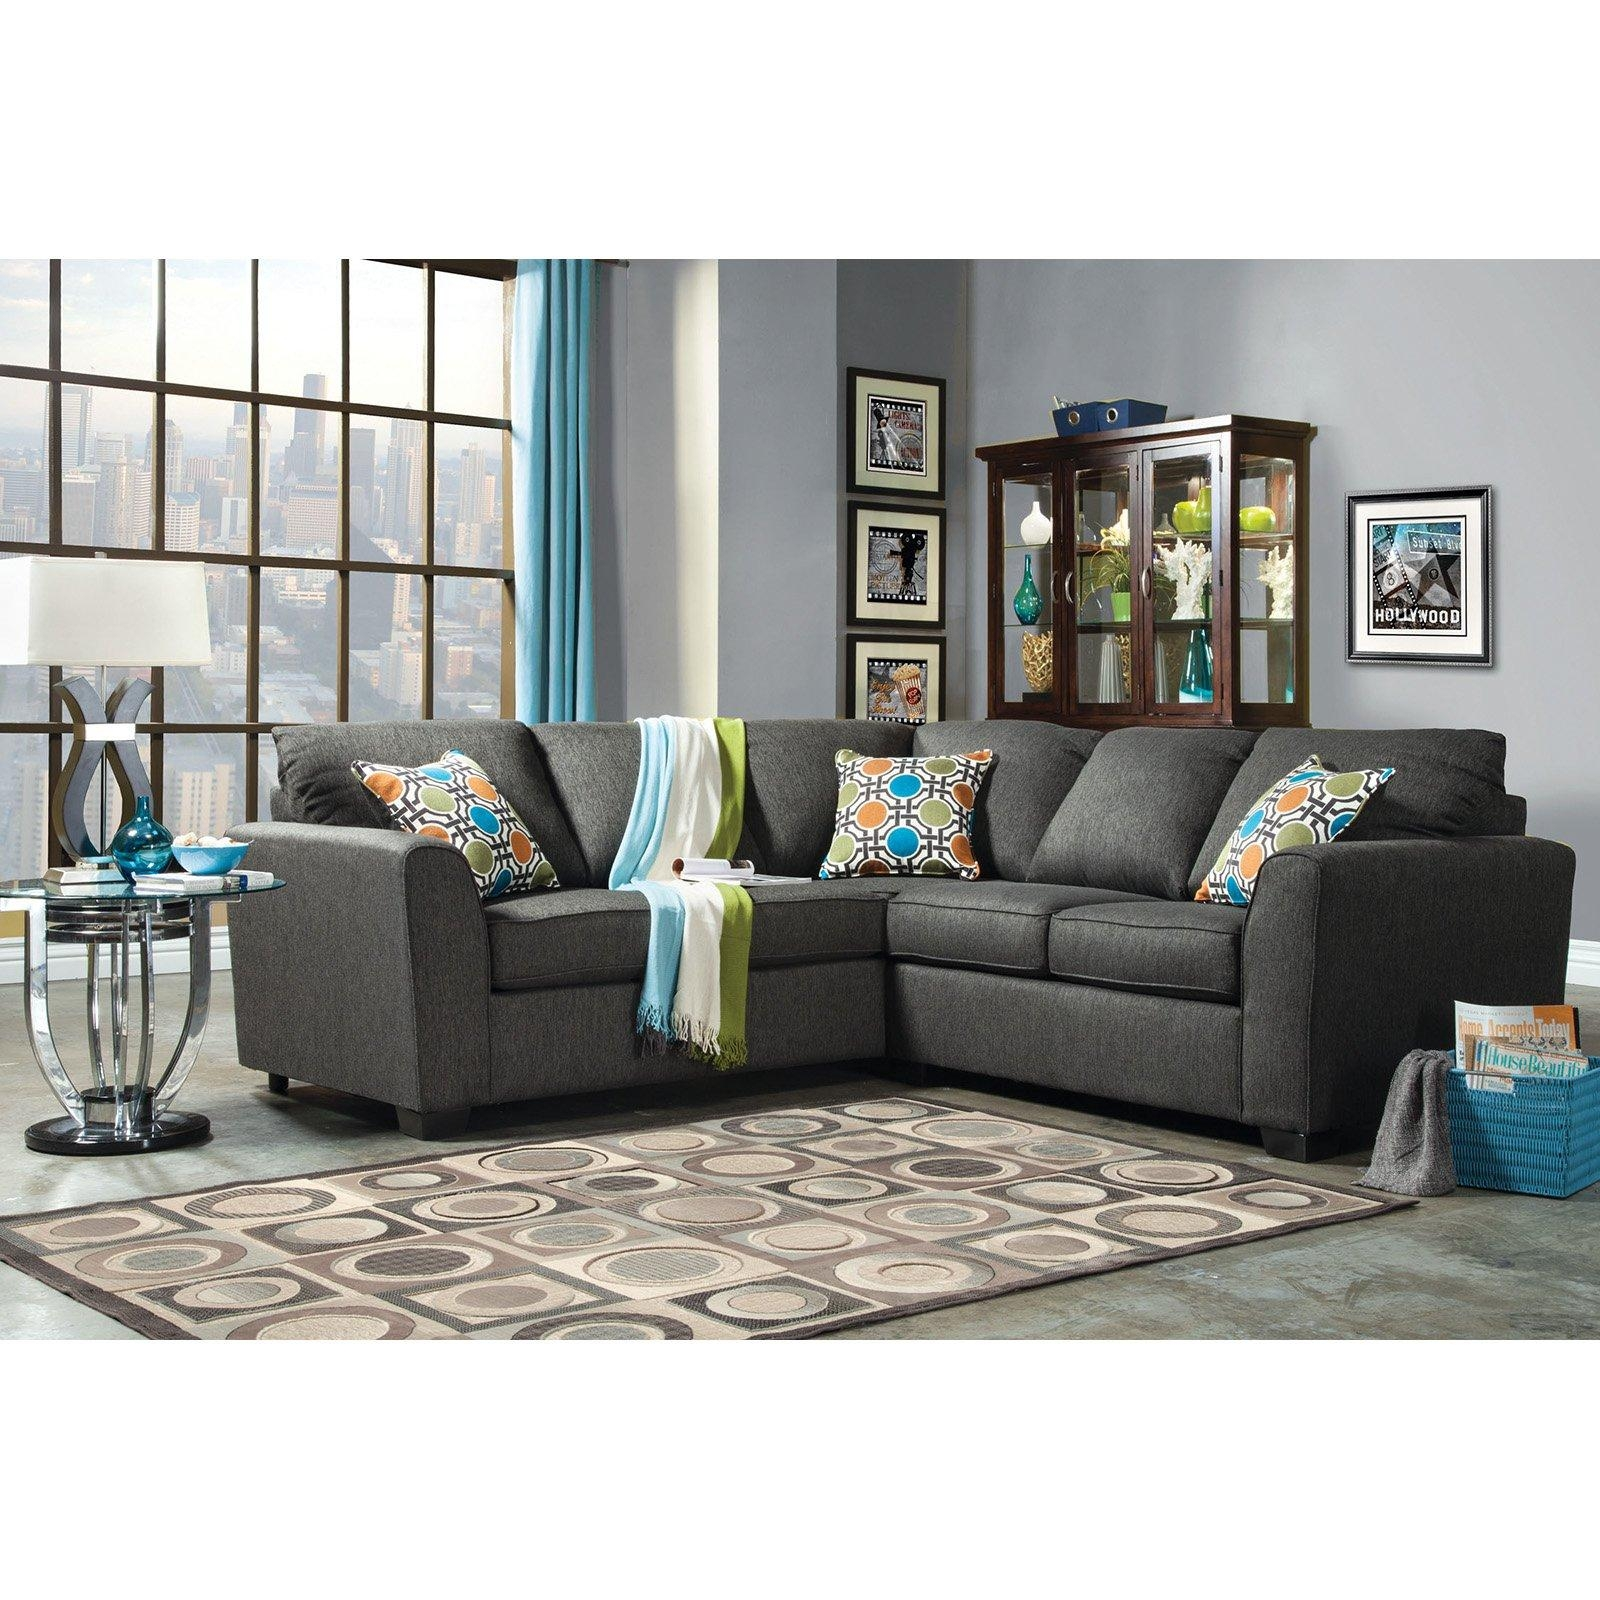 10 Spring Street Ashton Microfiber Sectional – Walmart Regarding Small 2 Piece Sectional (View 13 of 20)